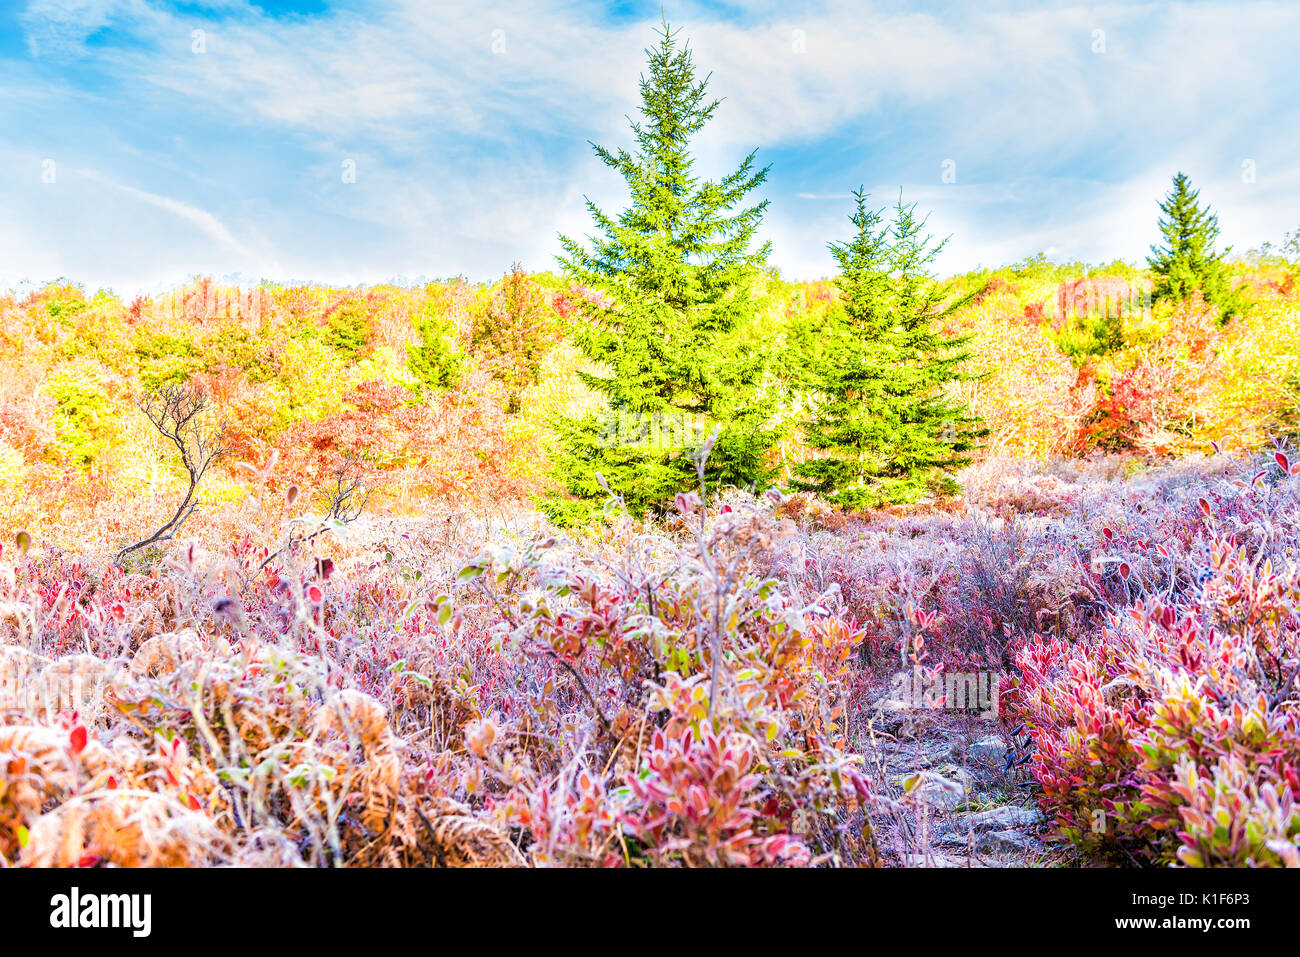 Frost iced trail path of blueberry bushes illuminated by morning sunlight at Dolly Sods, West Virginia with forest - Stock Image